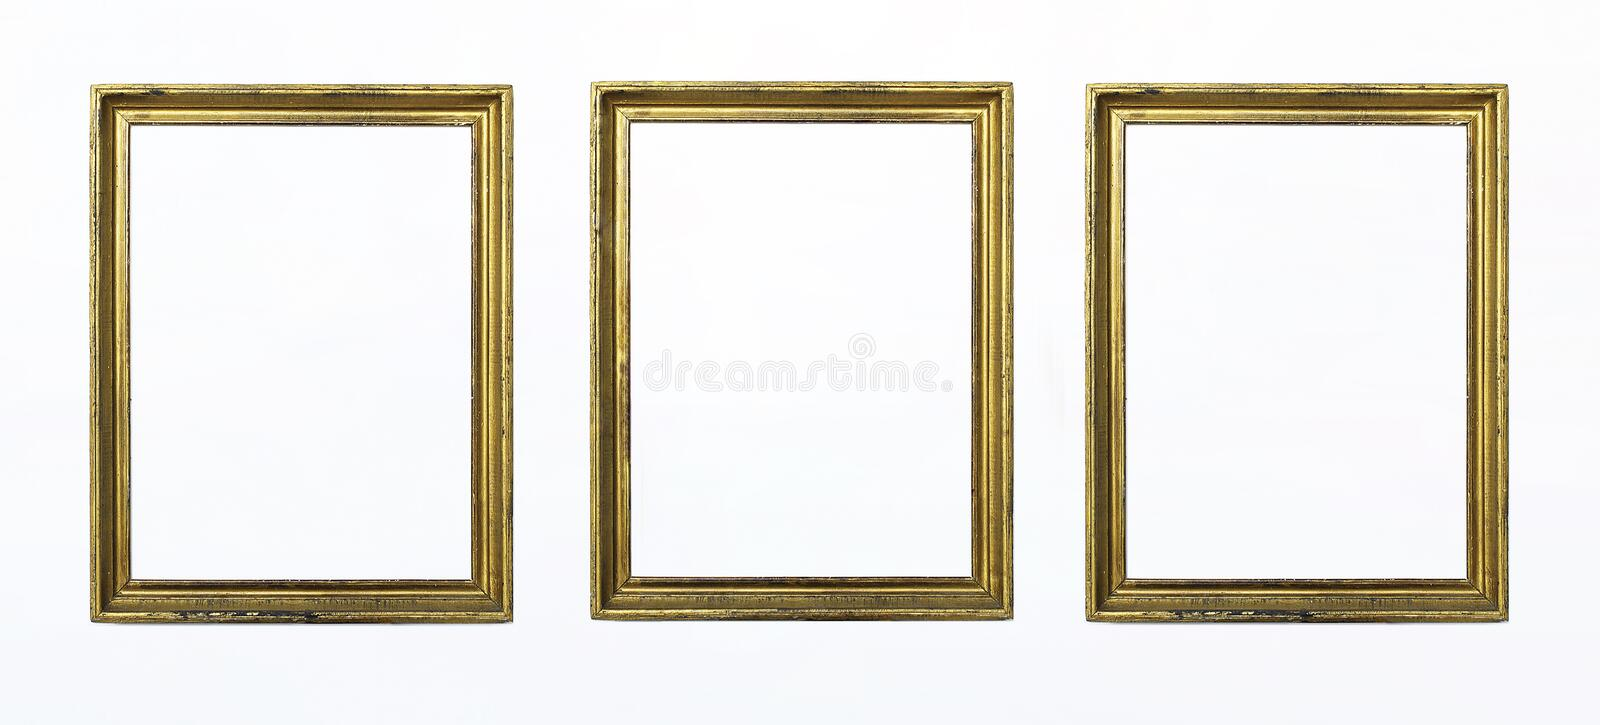 Three gold rectangular frames for painting or picture on white background. Isolated. Add your text. royalty free stock images